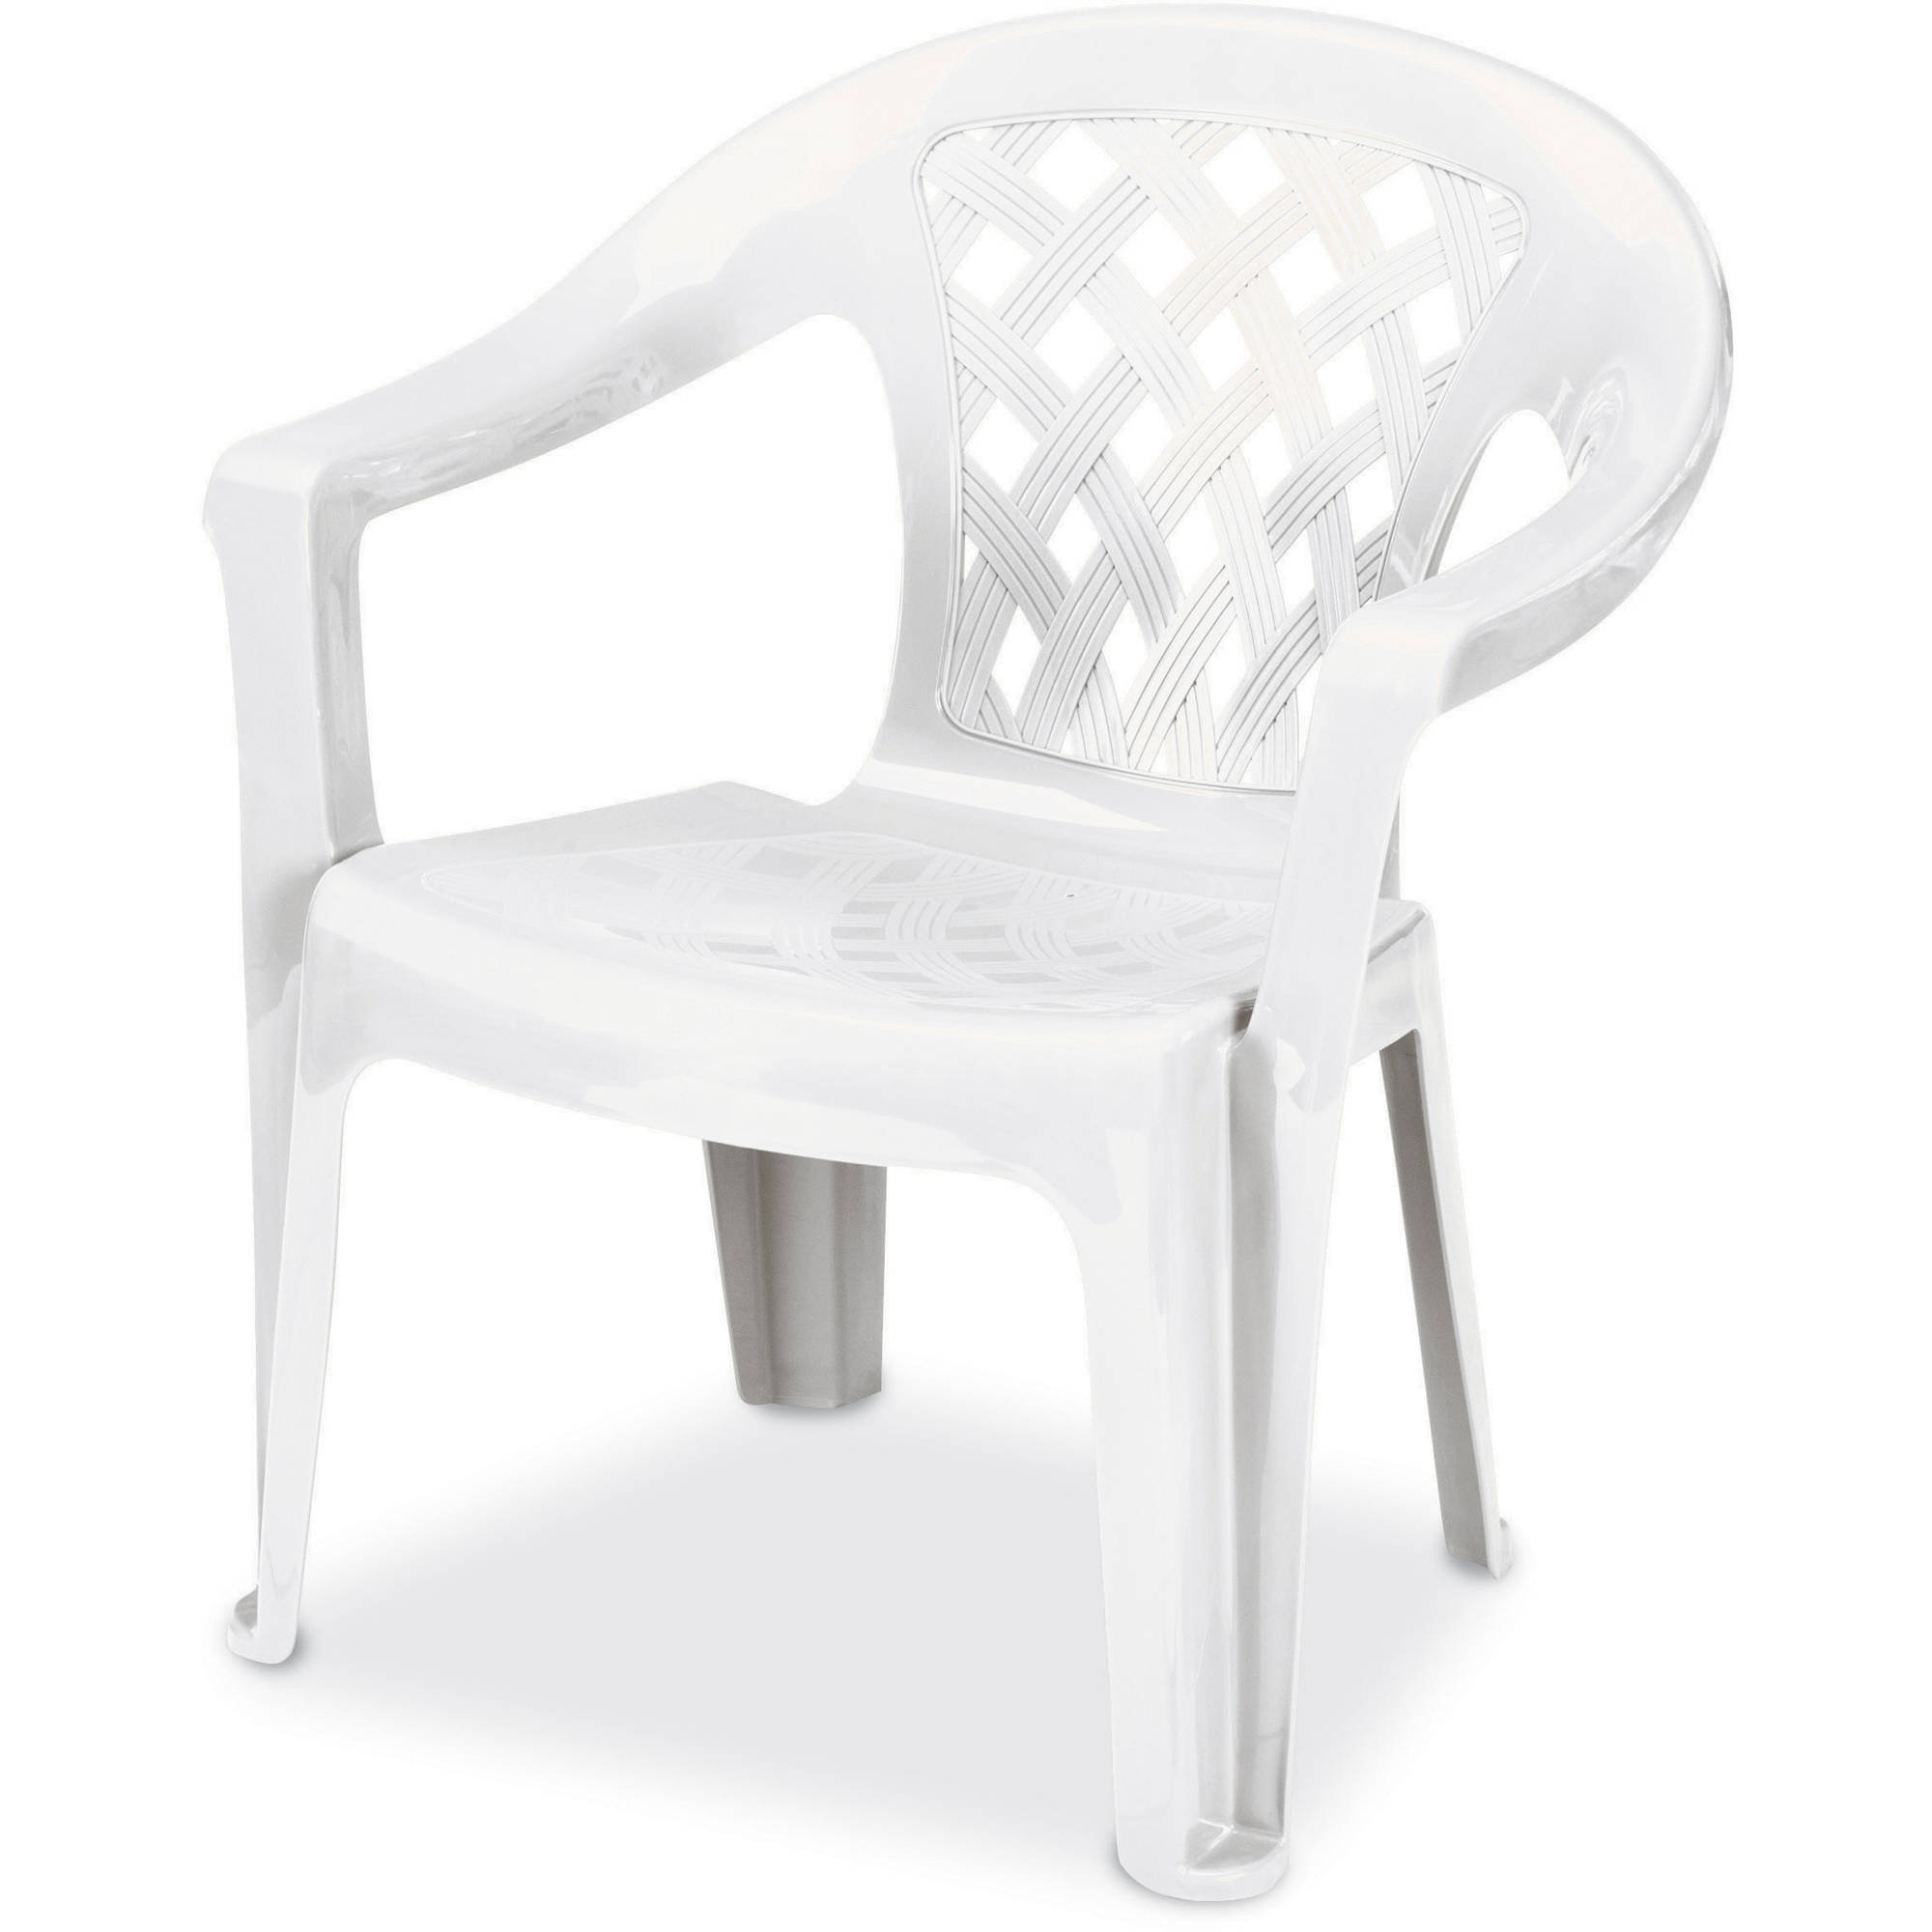 Resin Chairs Us Leisure Resin Big And Tall Lowback Chair White